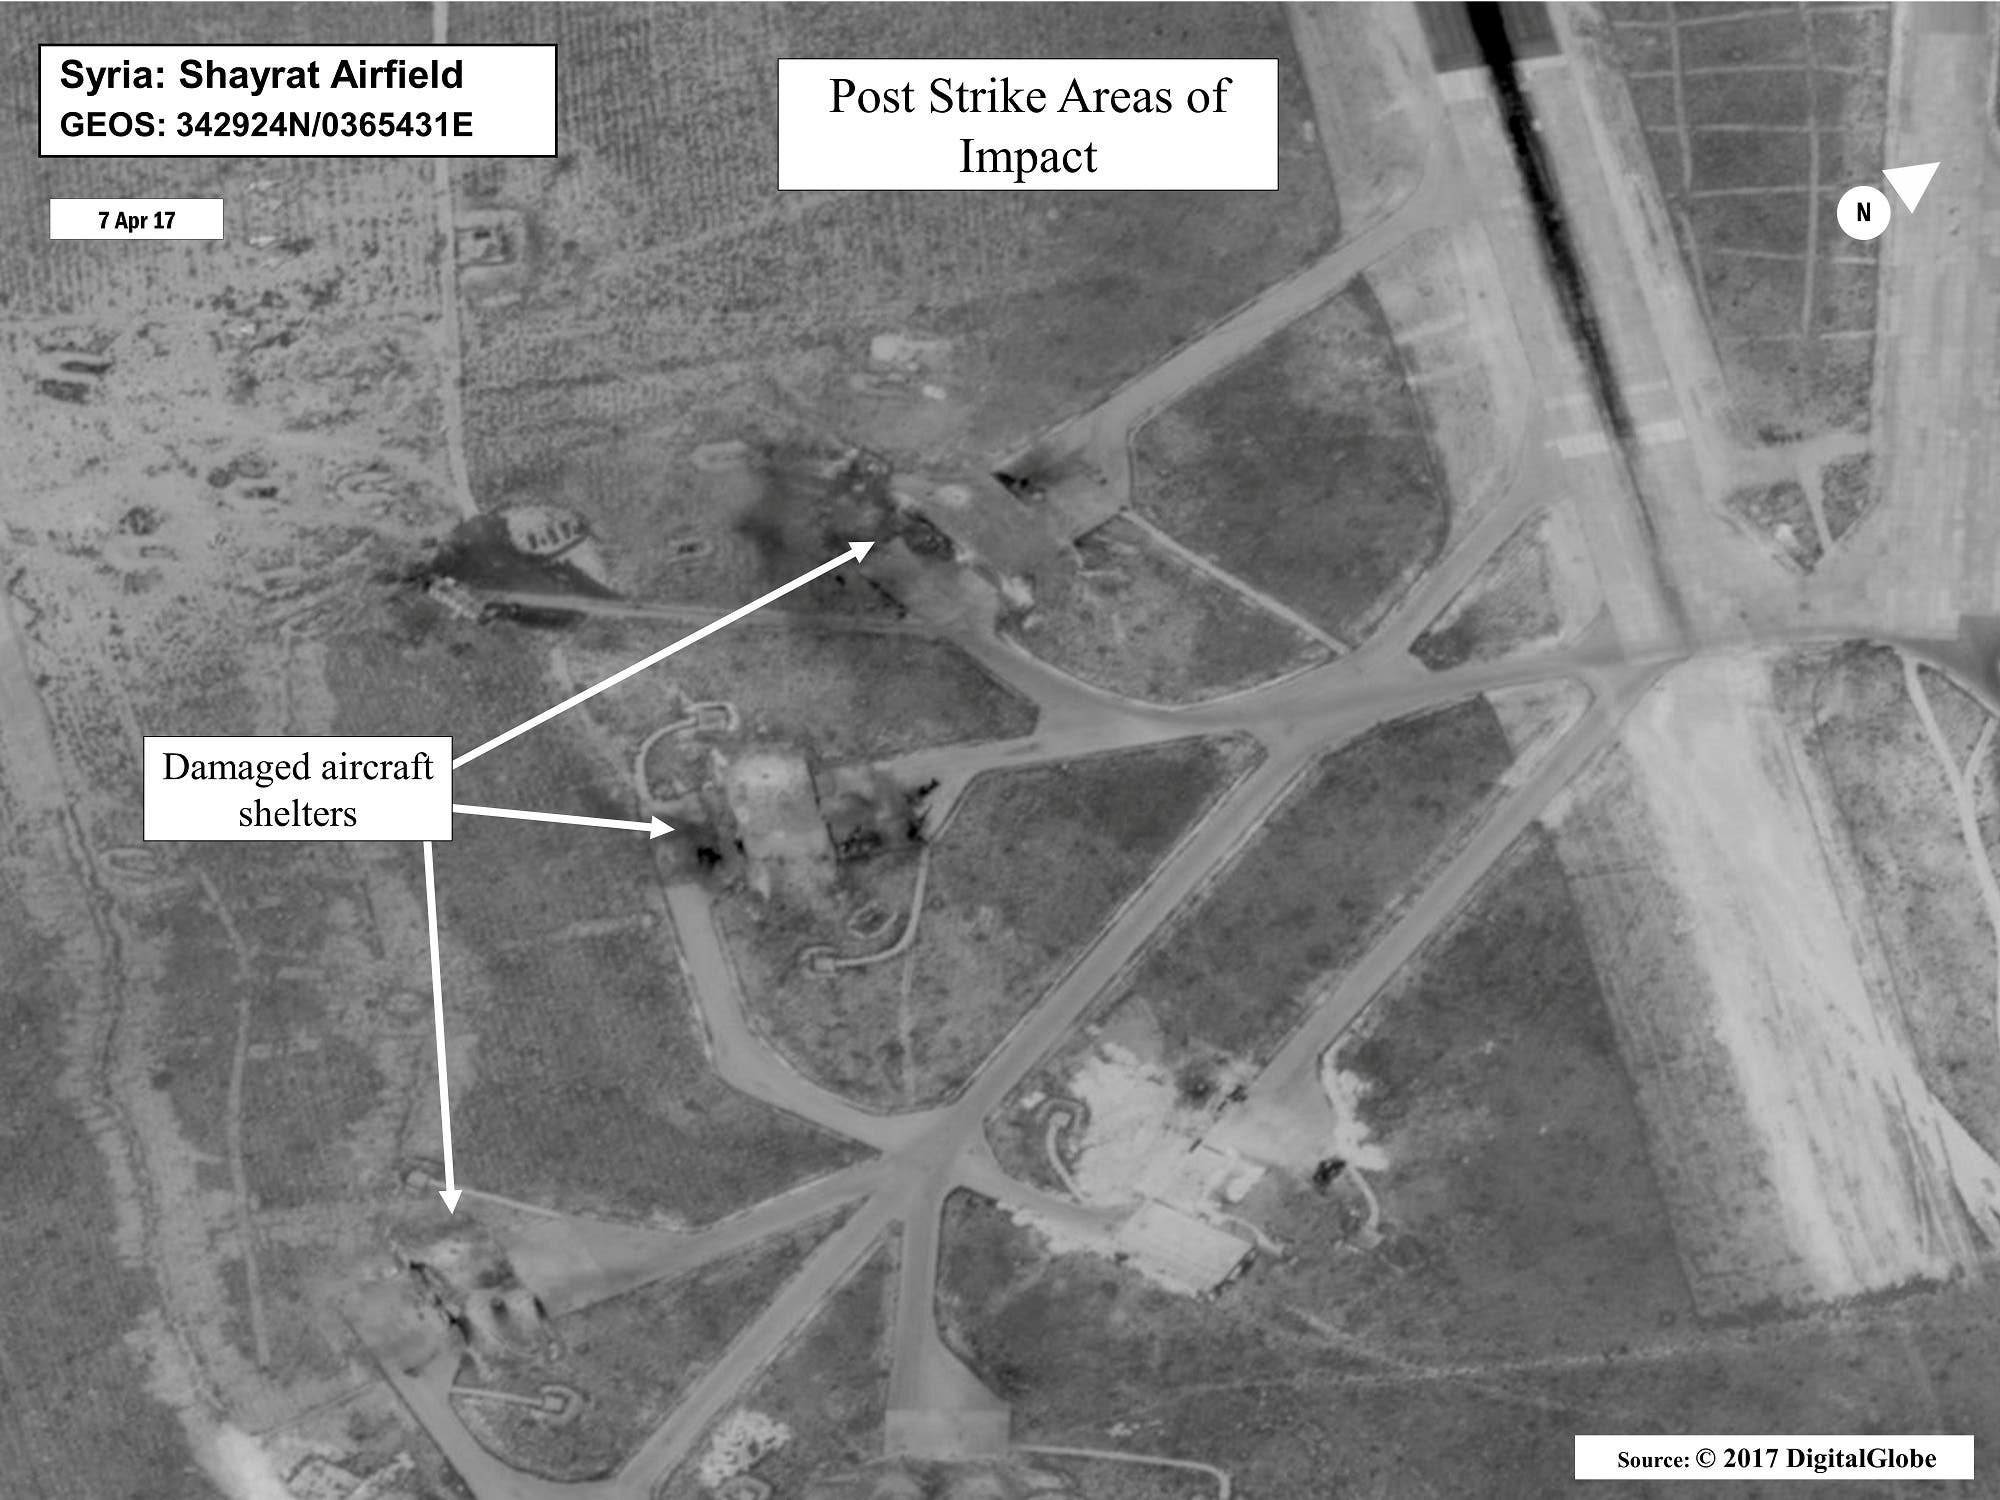 Battle damage assessment image of Shayrat Airfield, Syria, is seen in this DigitalGlobe satellite image, released by the Pentagon following U.S. Tomahawk Land Attack Missile strikes. (Reuters)